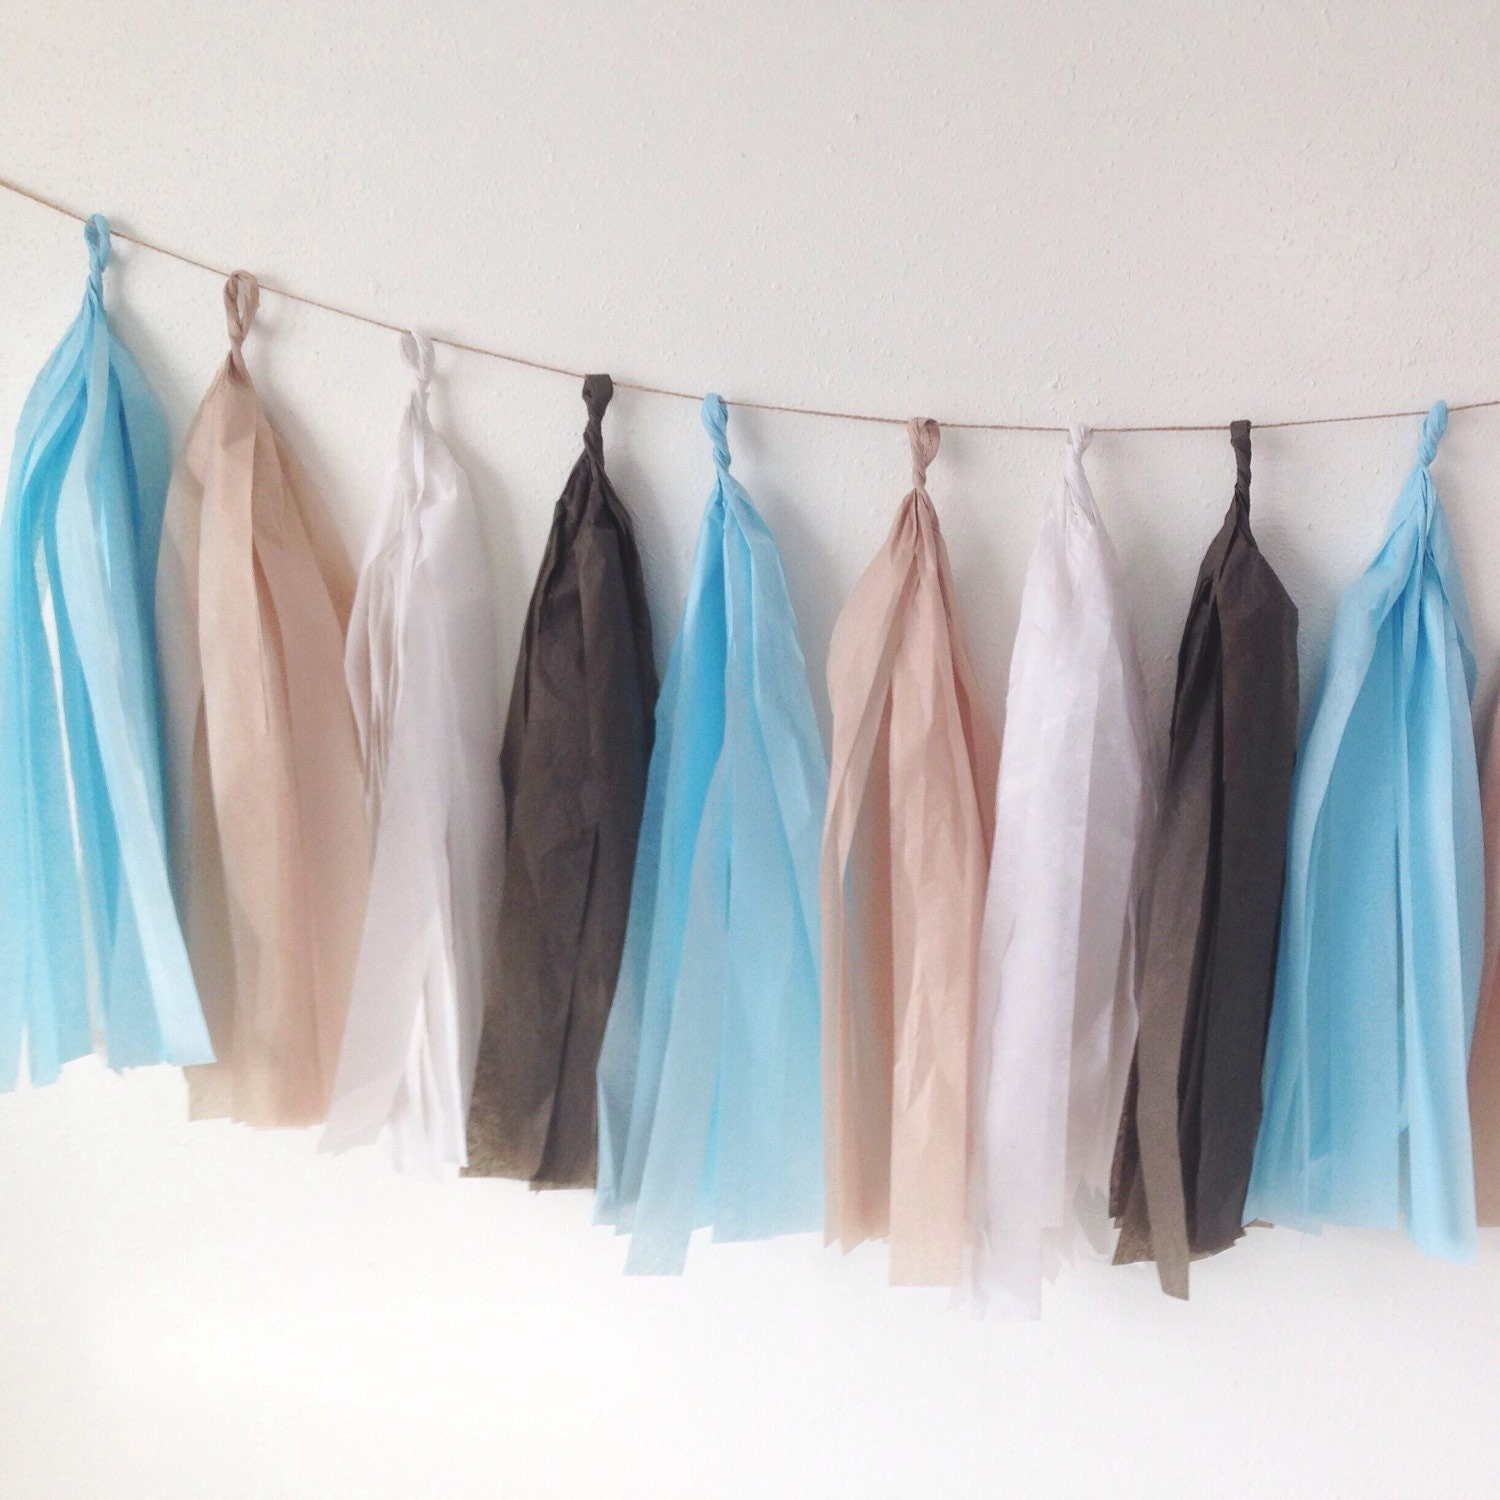 Tassel Garland In Brown Sky Blue White And Khaki Tissue Paper